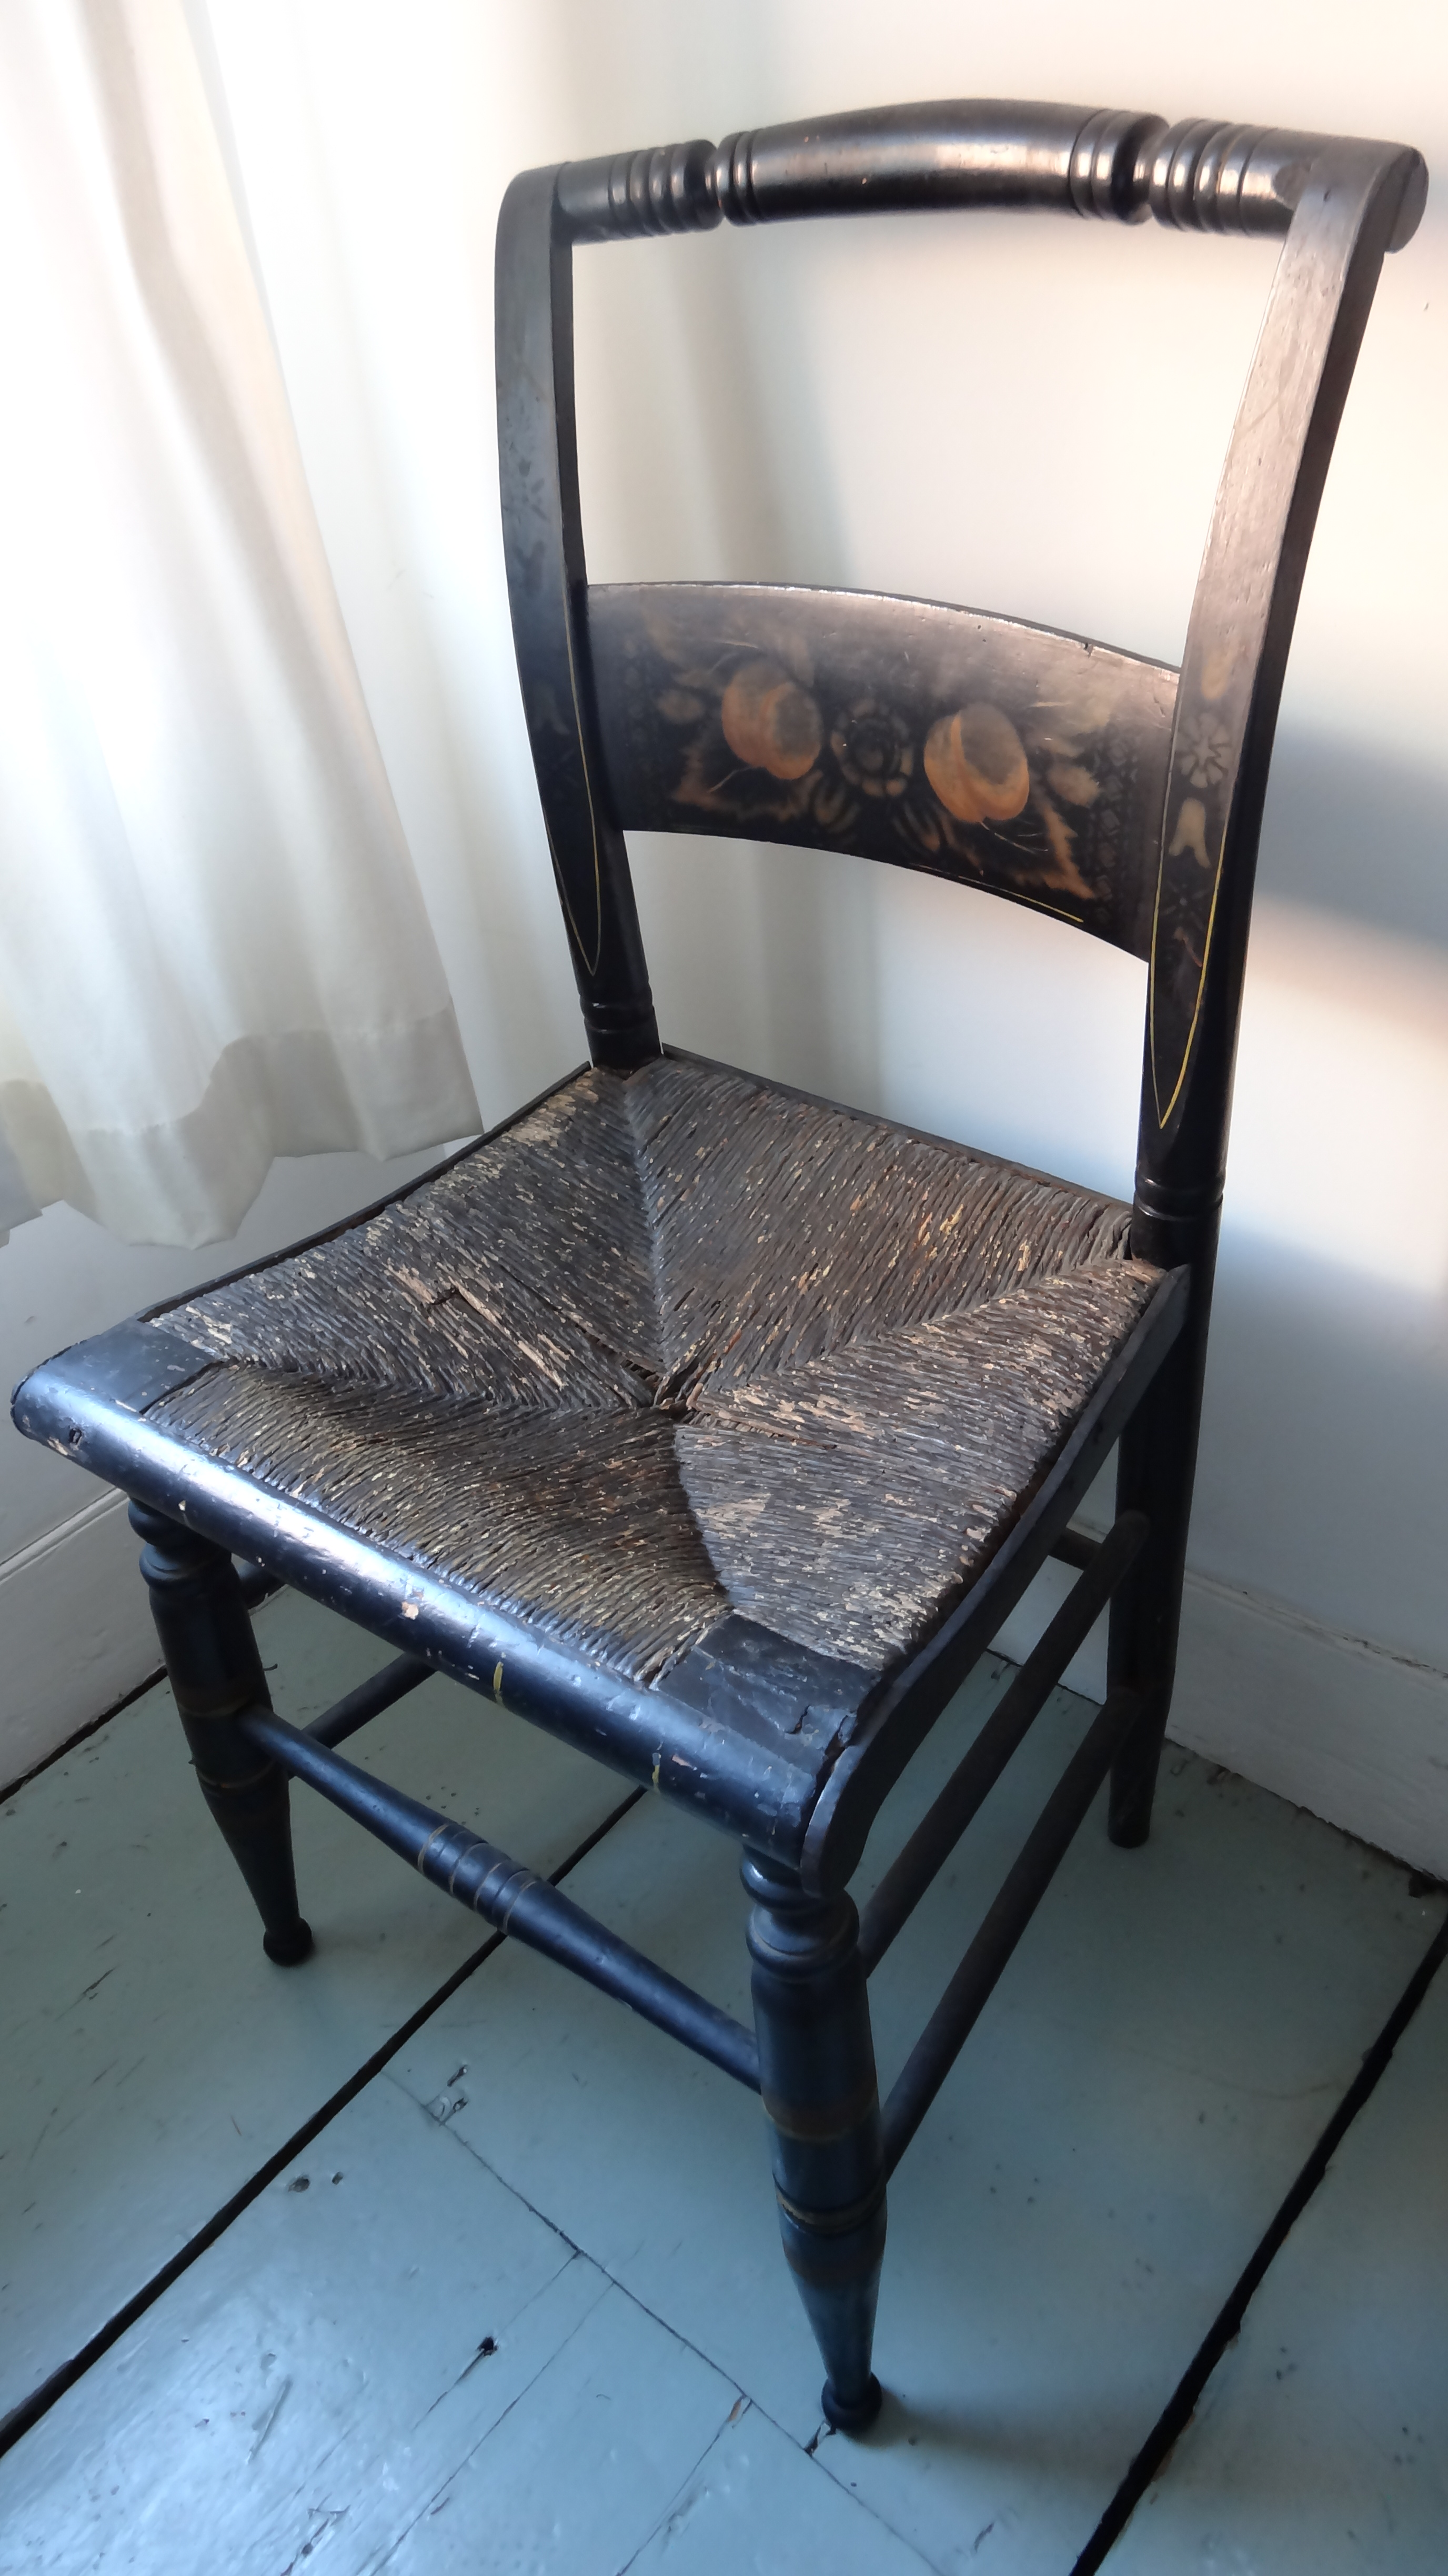 Fancy Furniture To Make Plans Diy How To Make Shiny91oap